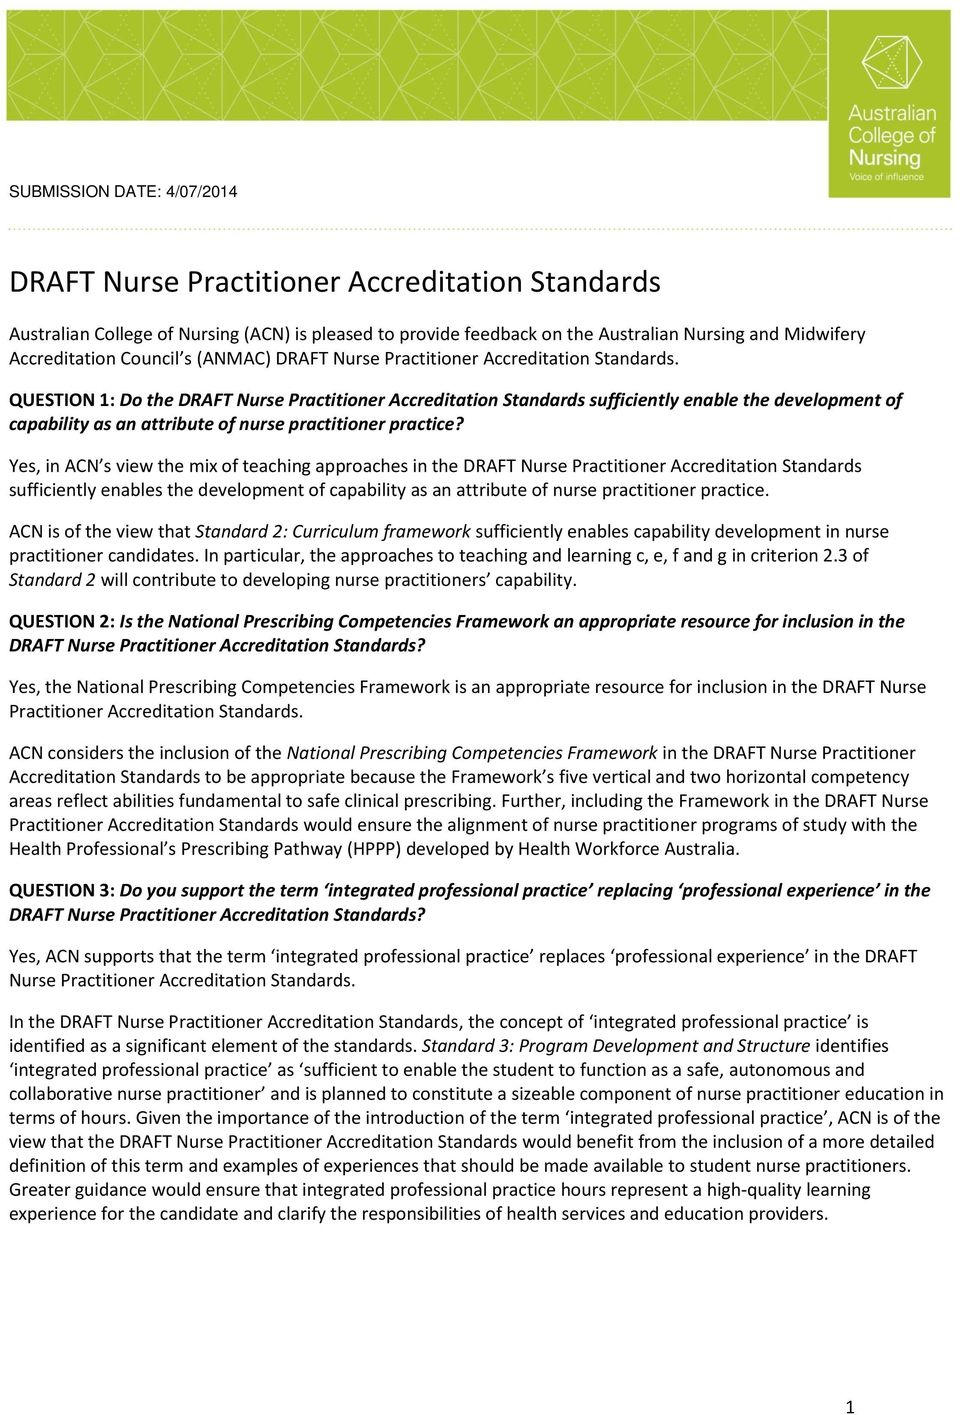 QUESTION 1: Do the DRAFT Nurse Practitioner Accreditation Standards sufficiently enable the development of capability as an attribute of nurse practitioner practice?